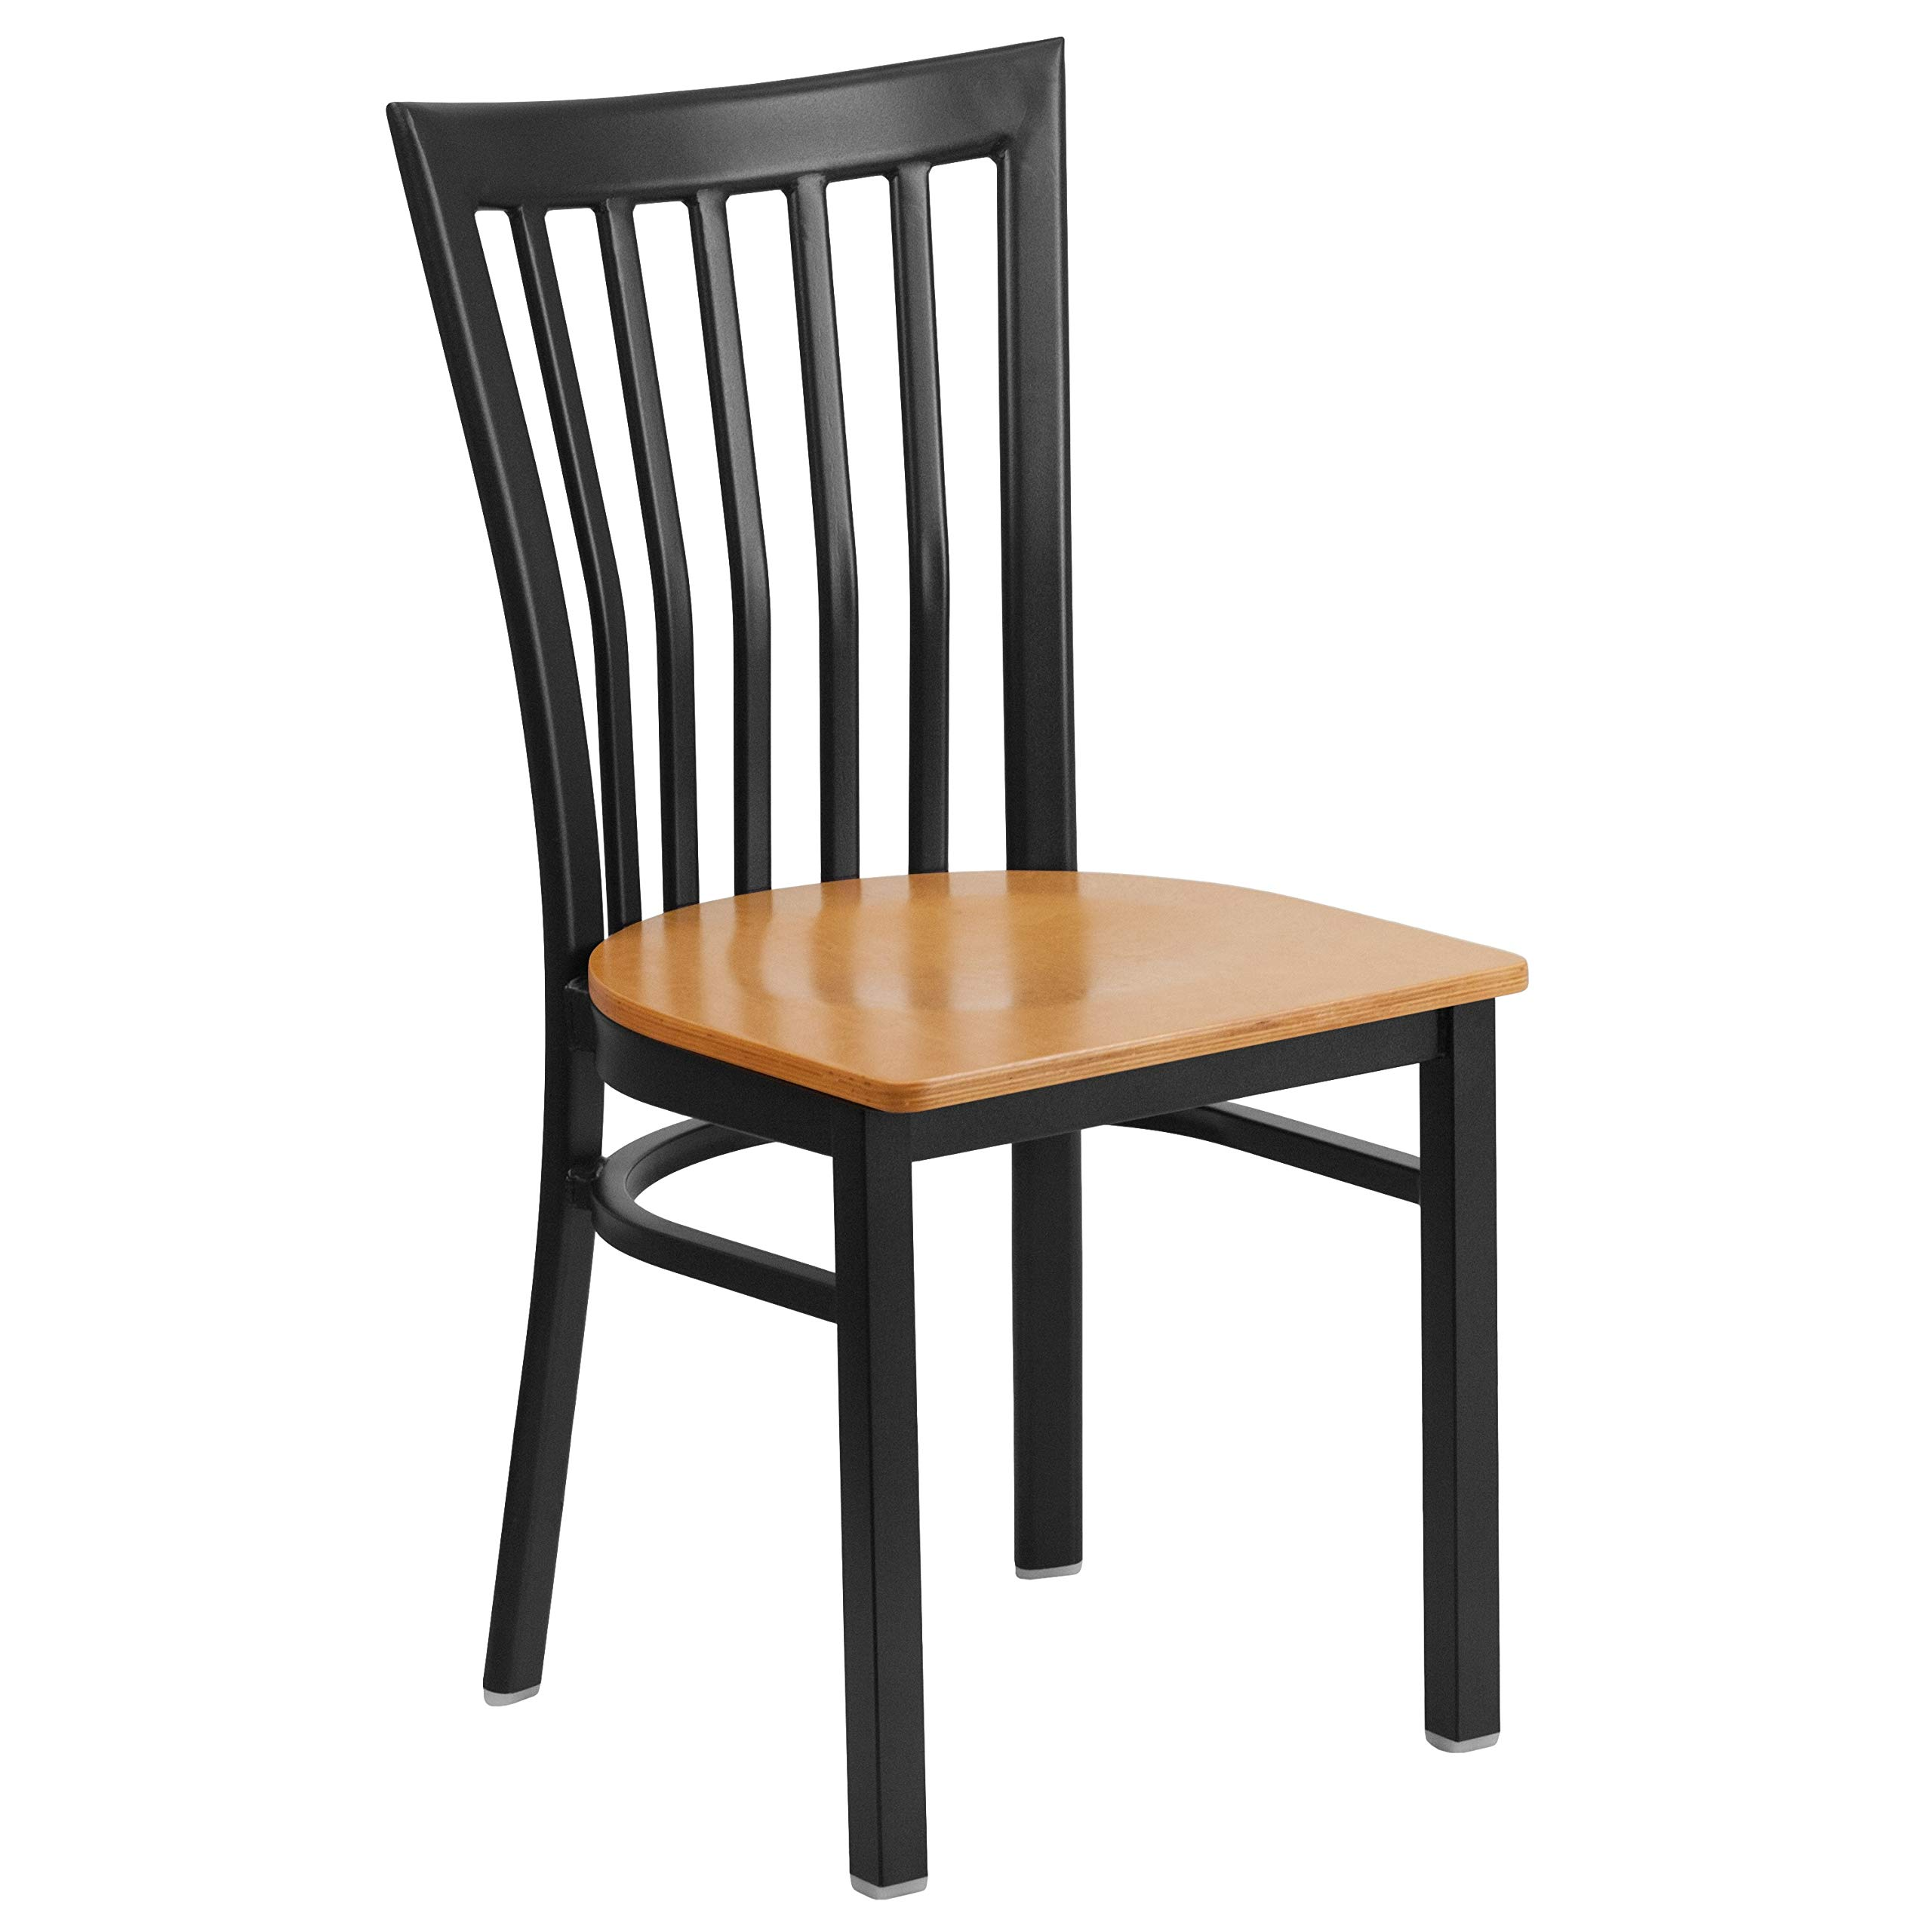 MFO Princeton Collection Black School House Back Metal Restaurant Chair - Natural Wood Seat